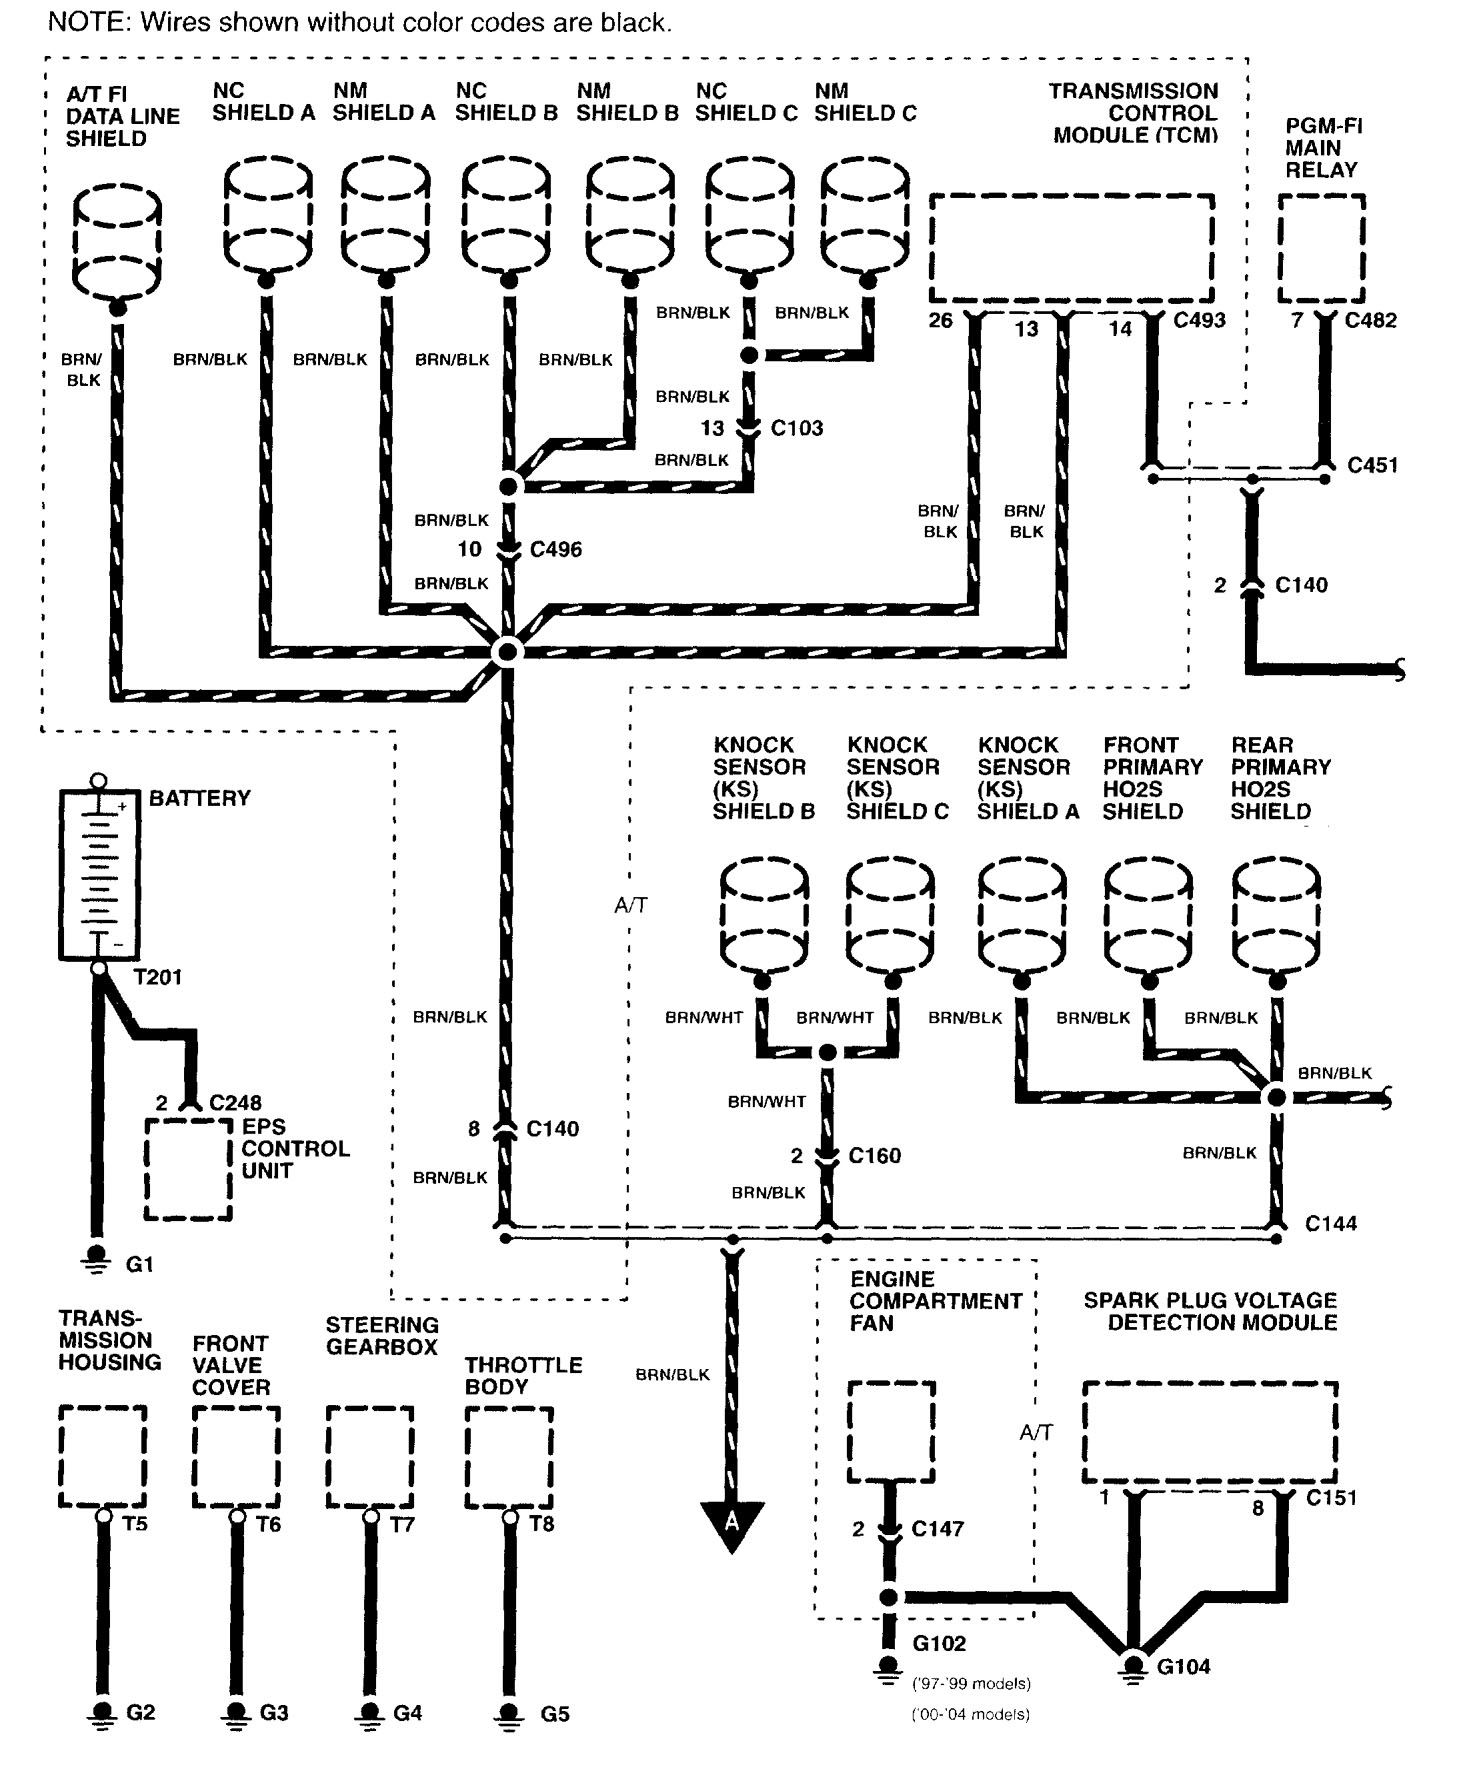 2004 Ford Freestar Sel Wiring Diagram Trusted Diagrams Fuse Ground Distribution All Kind Of 2003 Excursion